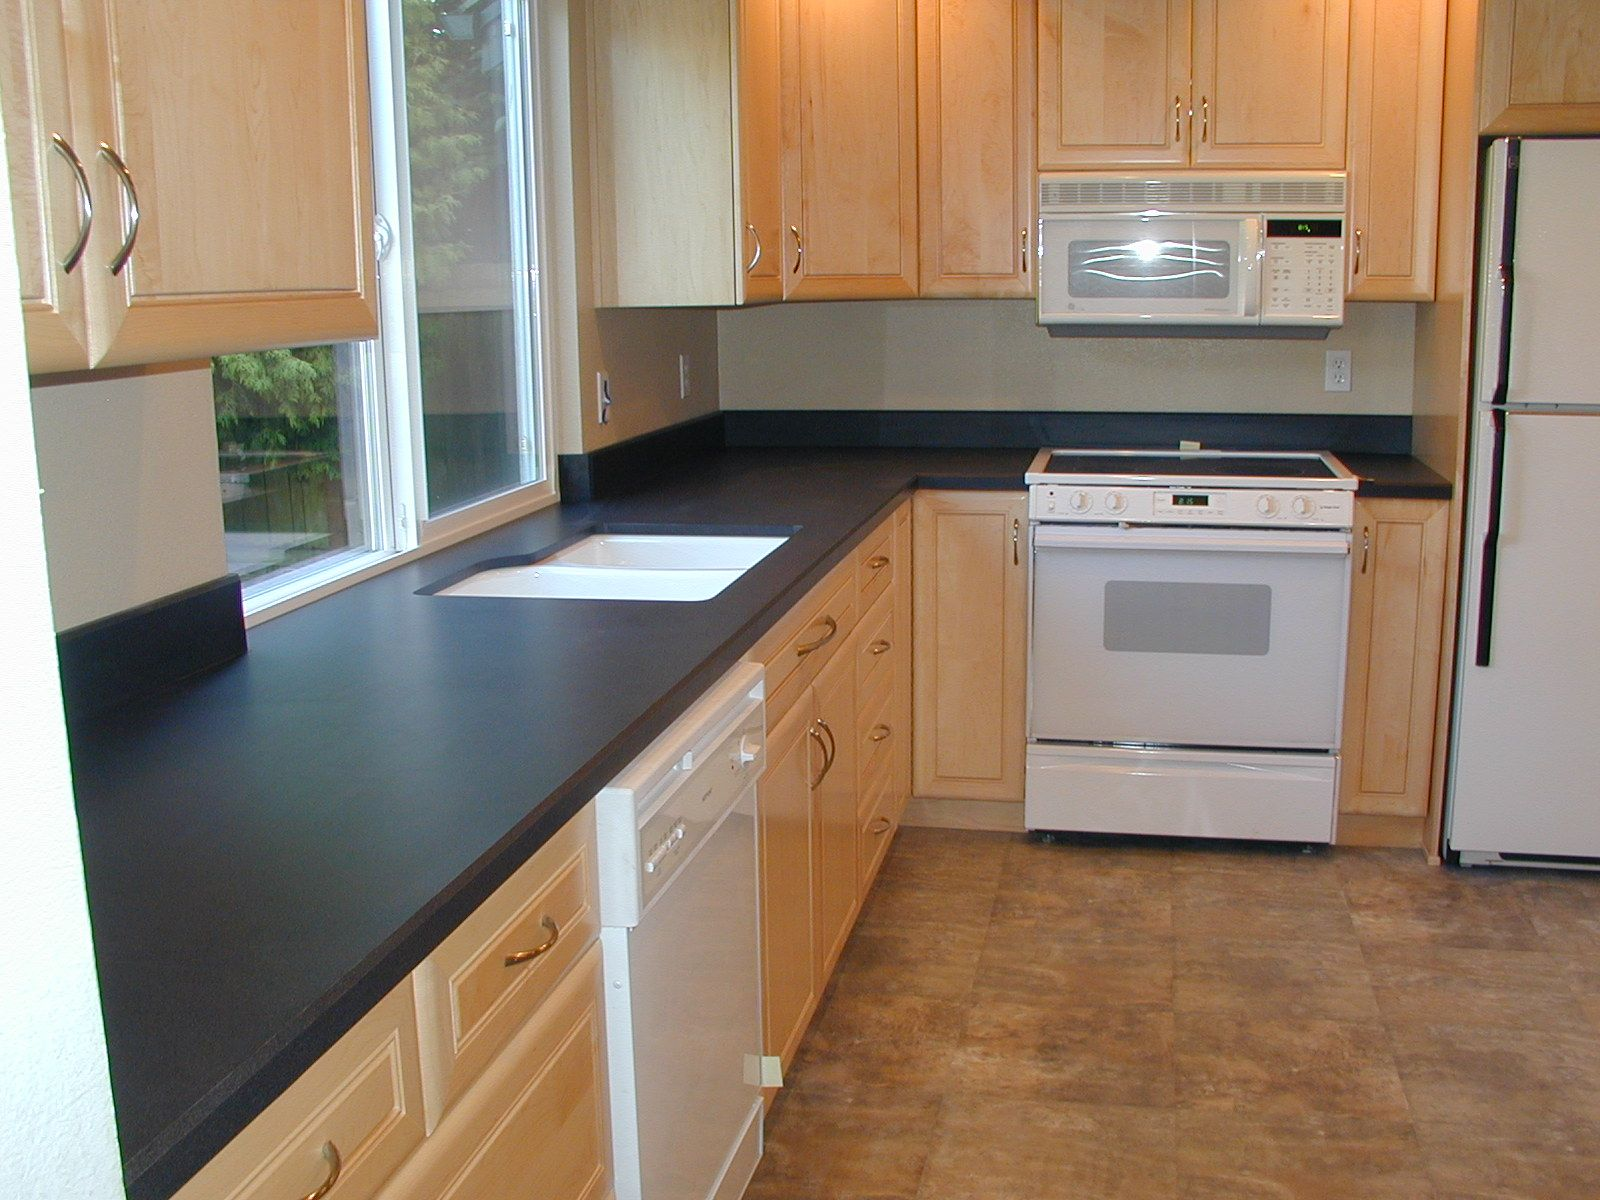 Kitchen ideas with dark countertops countertop design for Countertop decor ideas